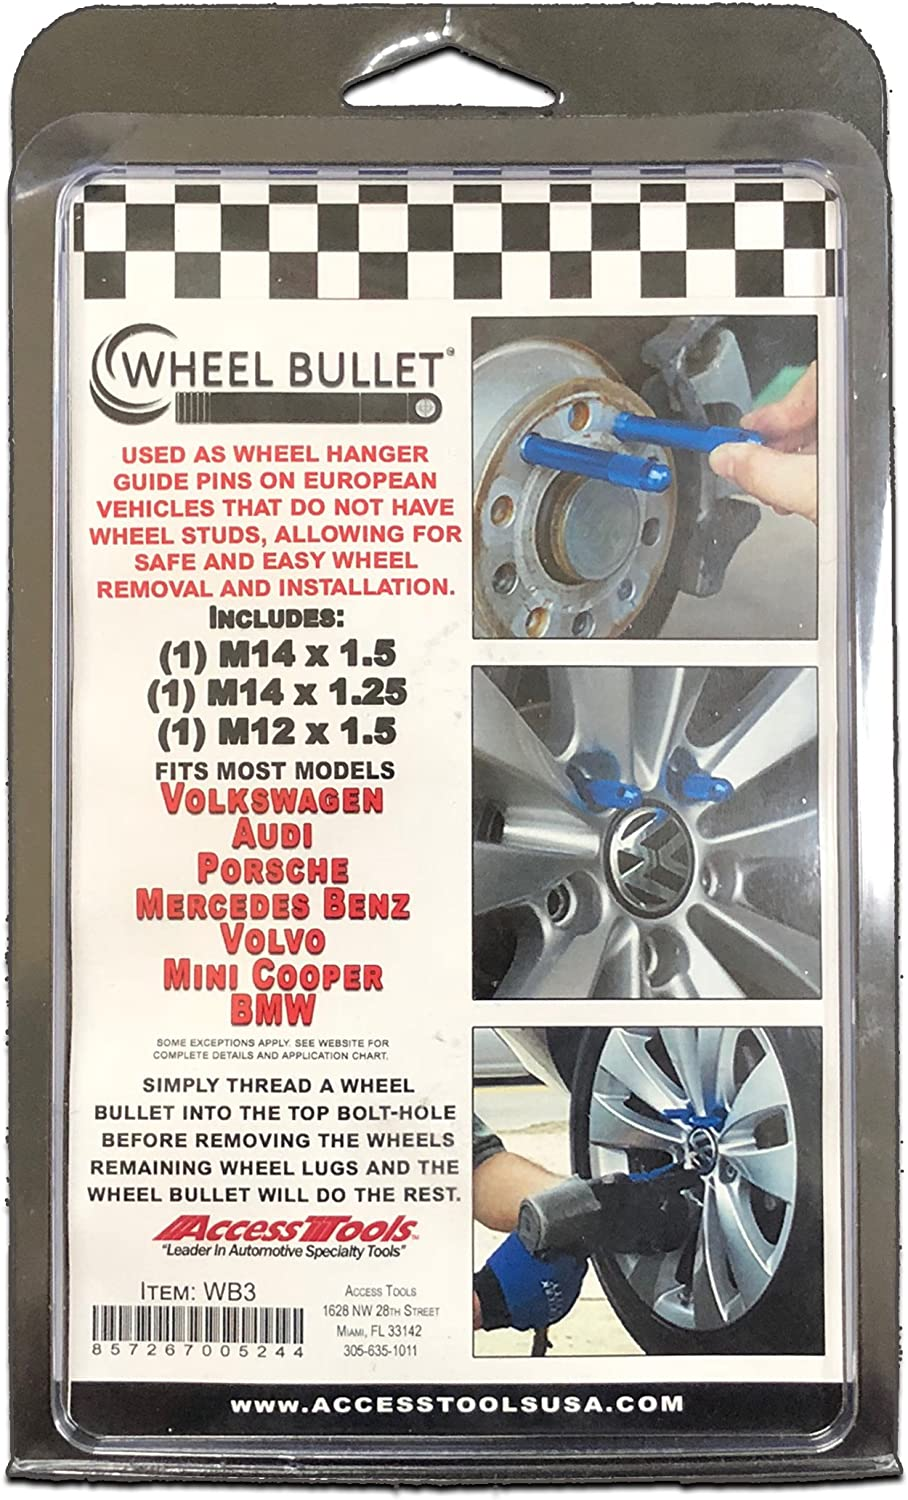 Access Tools WB24 Wheel Bullets 24 Pack Case not included